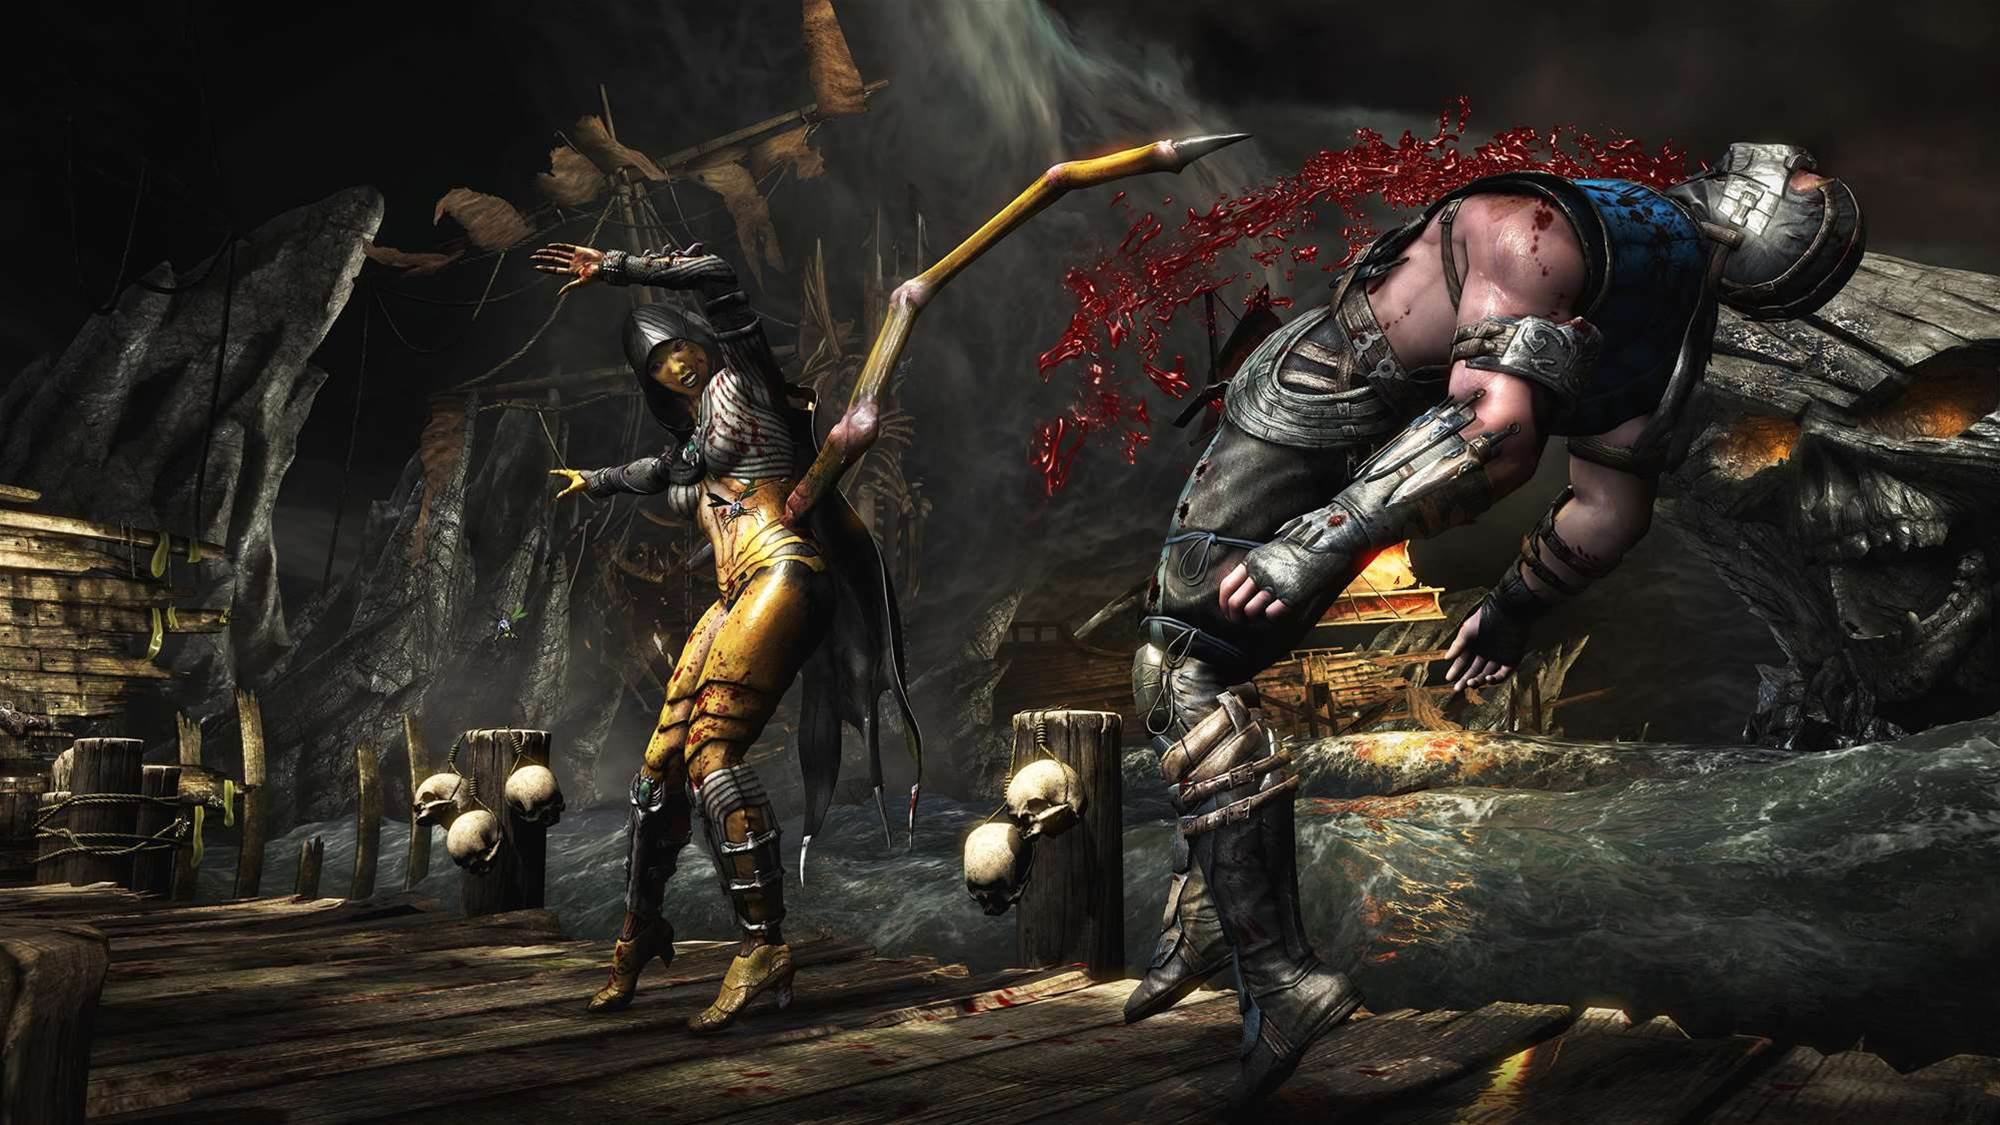 Mortal Kombat X cops an R18+ rating